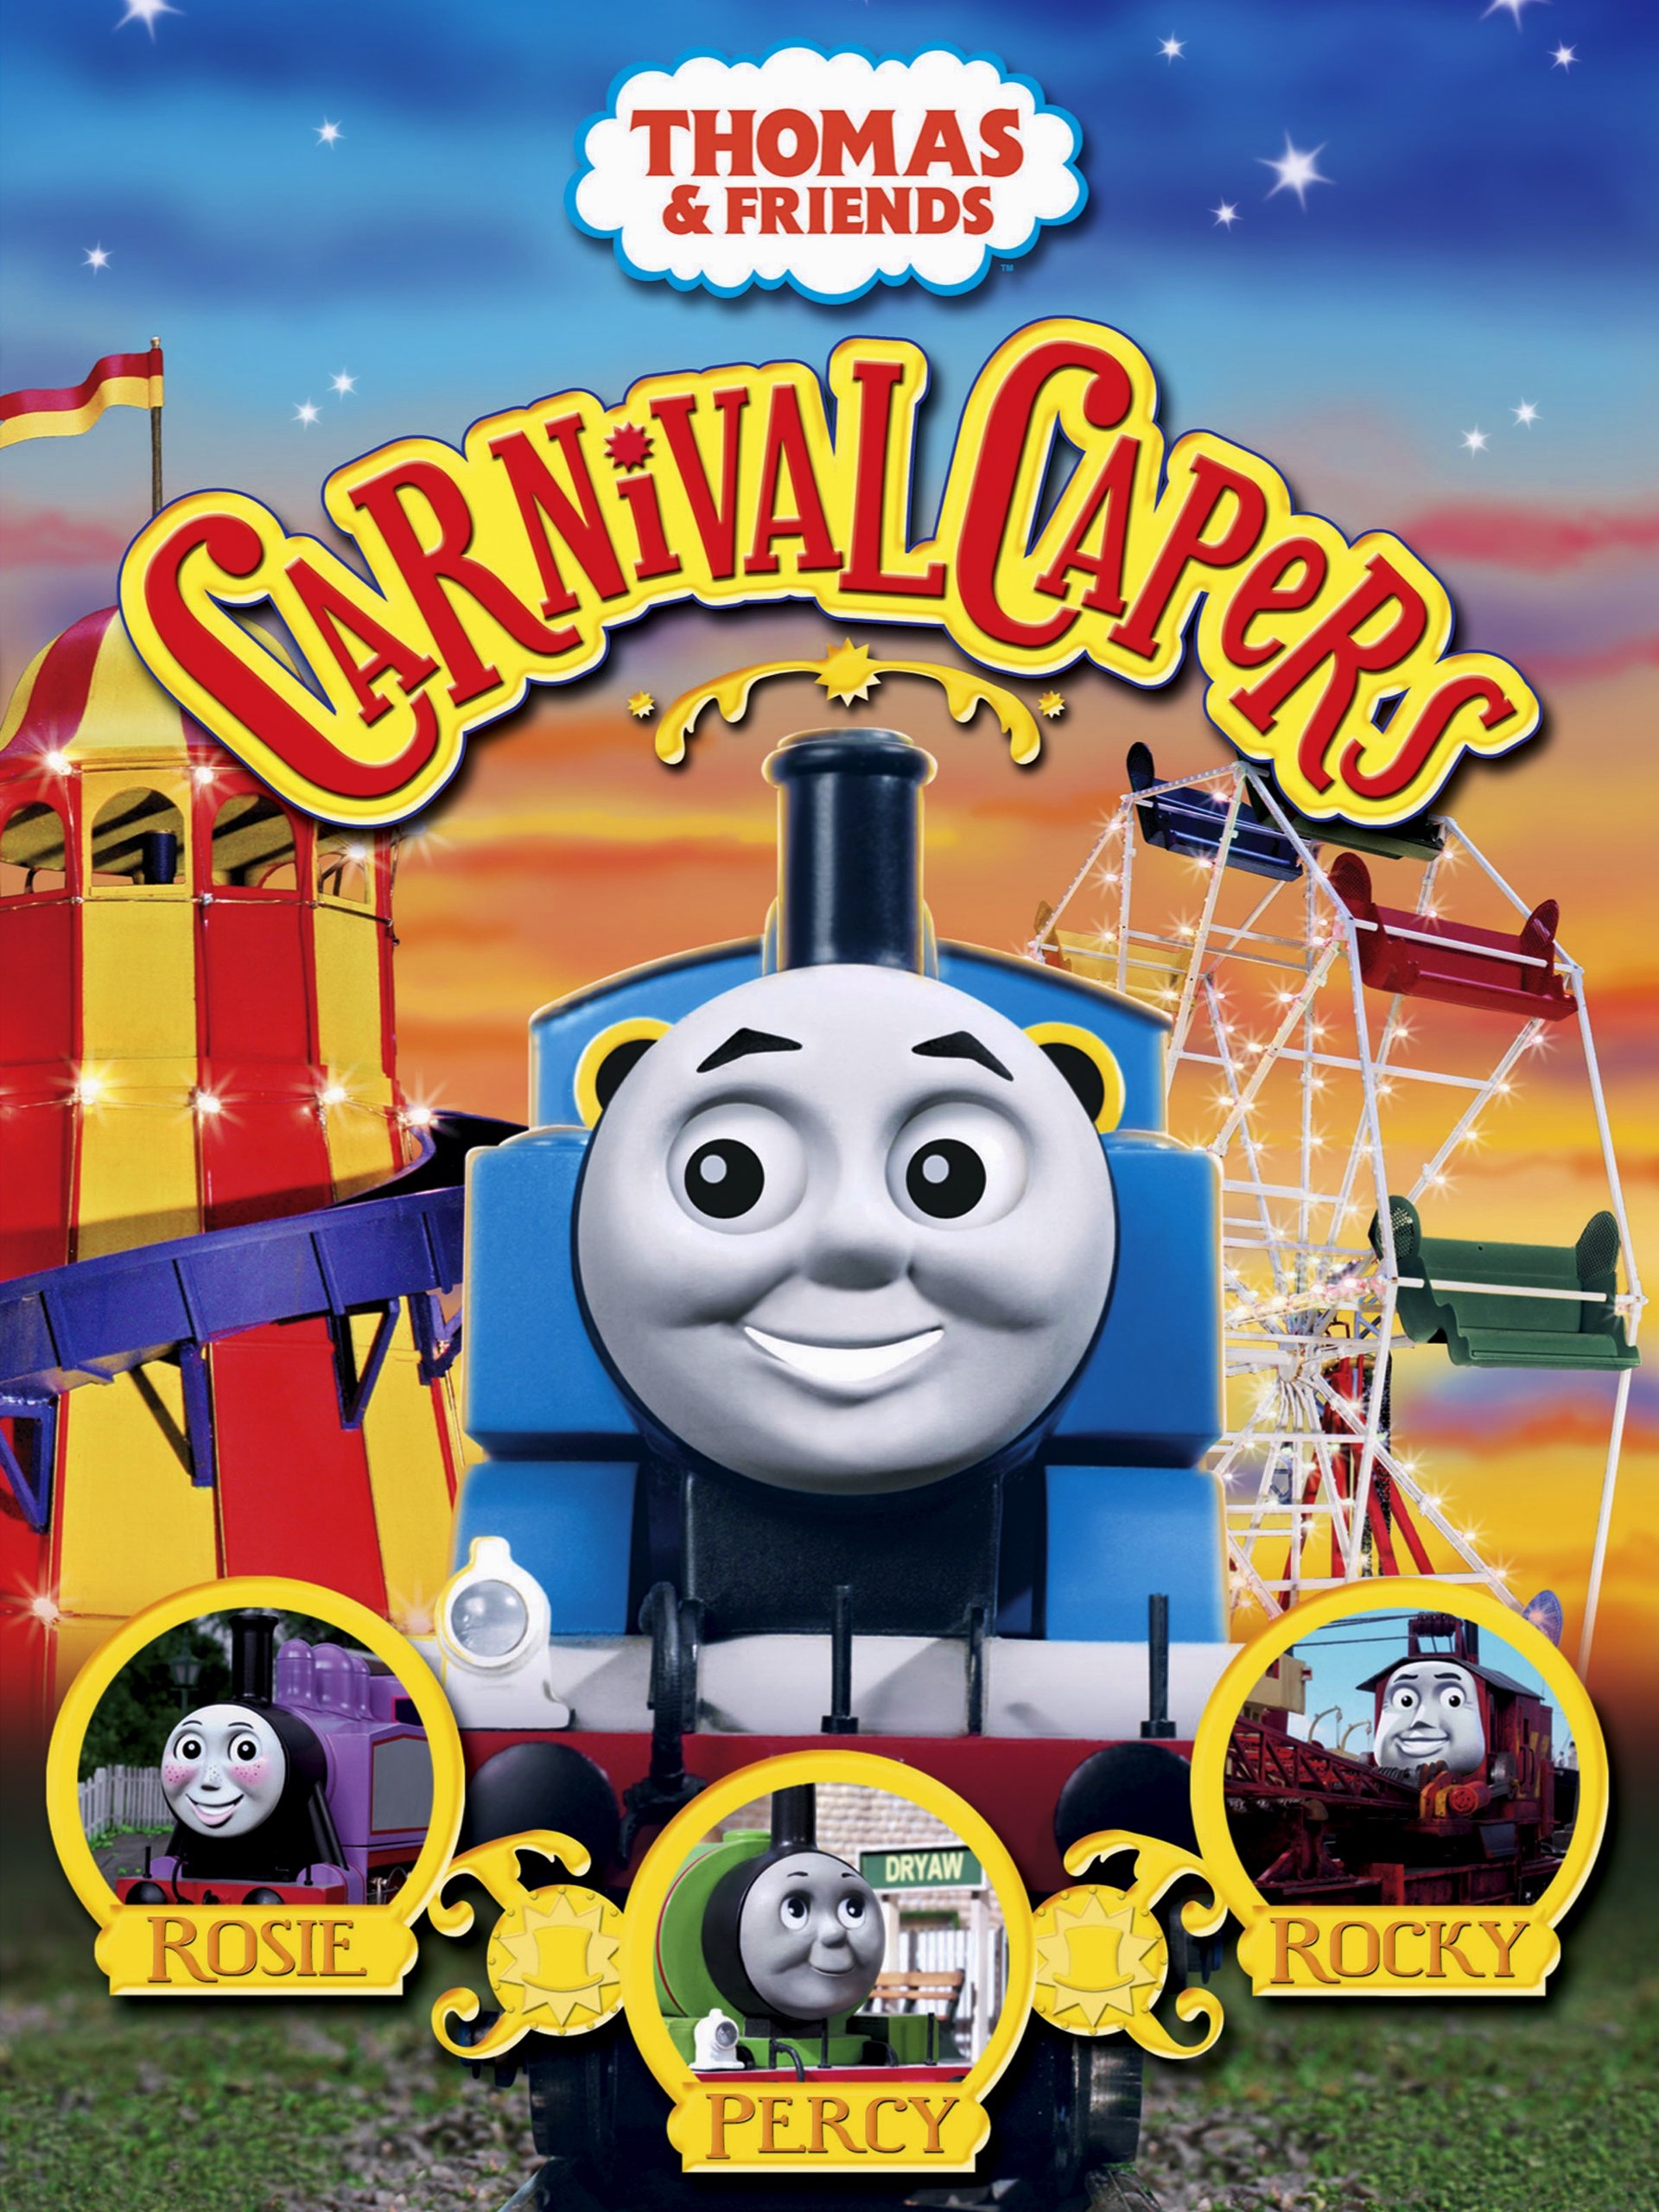 thomas and friends carnival